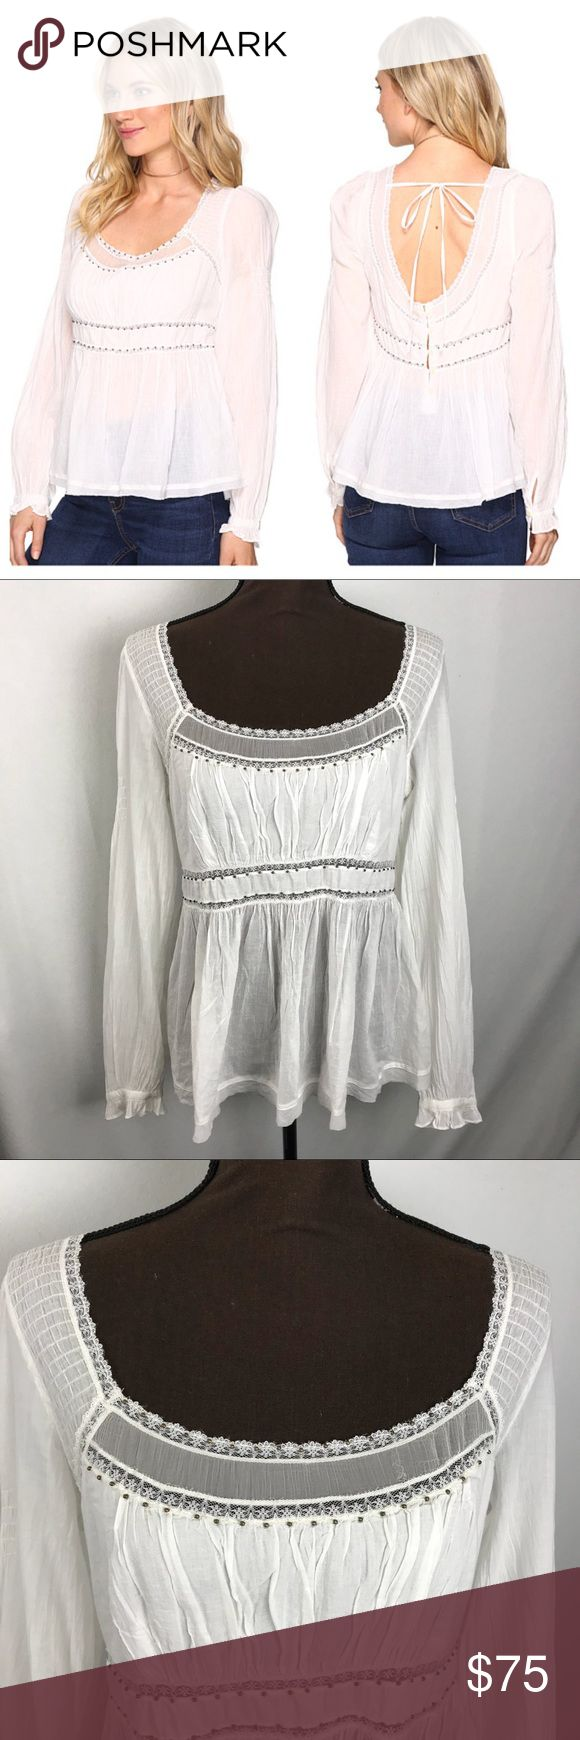 [Free People] Ivory Strangers in Love Peasant Top • NWT • Small Burn Marks on Cuff • Ivory Color • Bronze Beaded Embellishments  • Open Tie Back • 1 Button Cuff  • 5 Button Down Back  • Lace Detail On Middle & Collar • Style Name: Strangers In Love • Length: 25ins • Bust: 19ins • Sleeve Length: 26ins • 100% Cotton Free People Tops Blouses